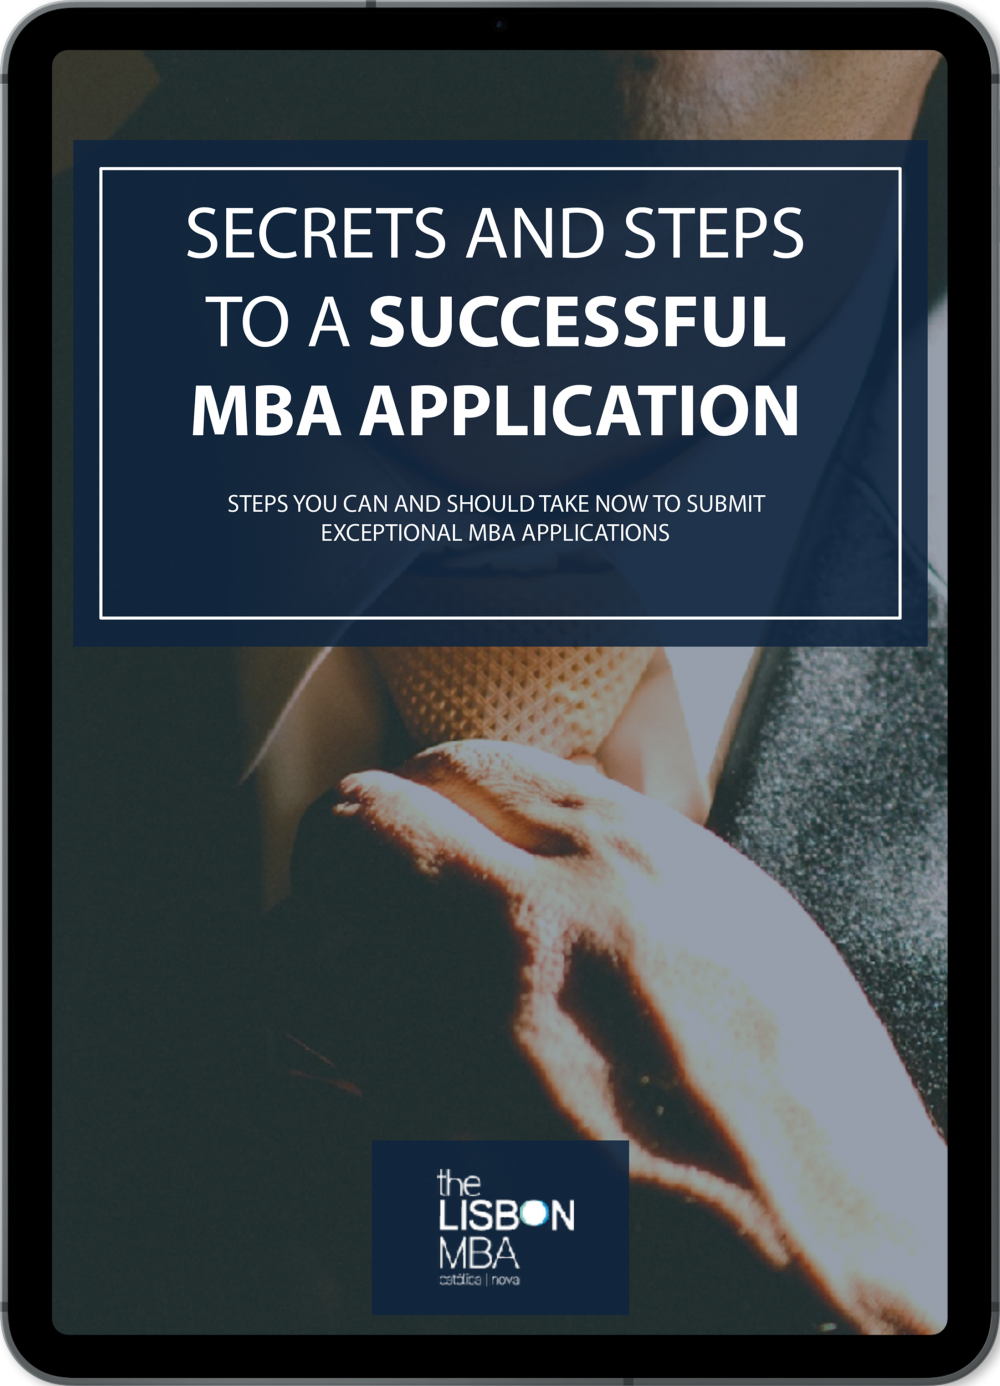 Secrects and steps for a successful mba application